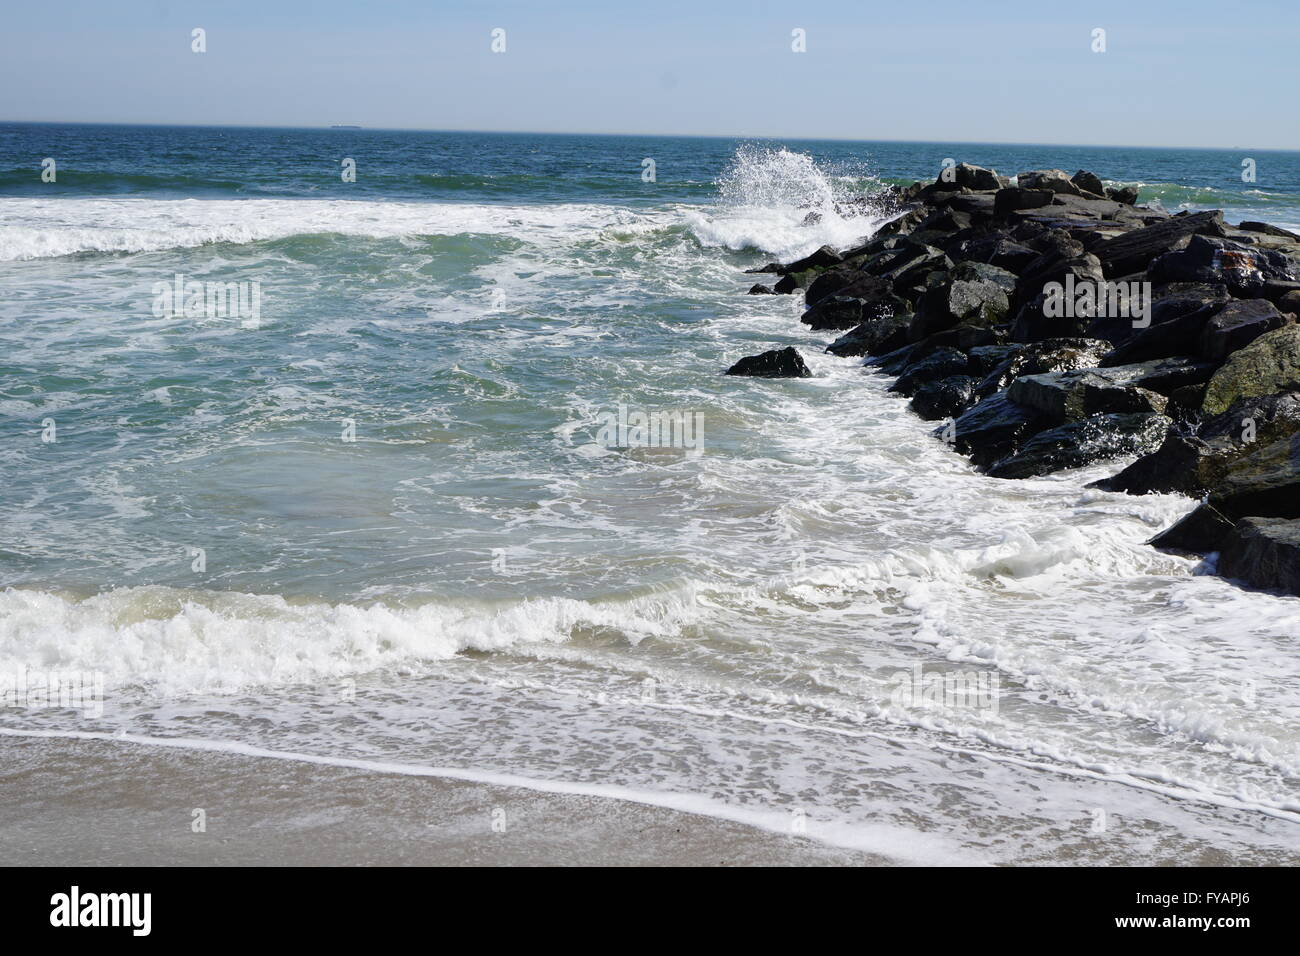 Ocean waves hitting a jetty. Stock Photo